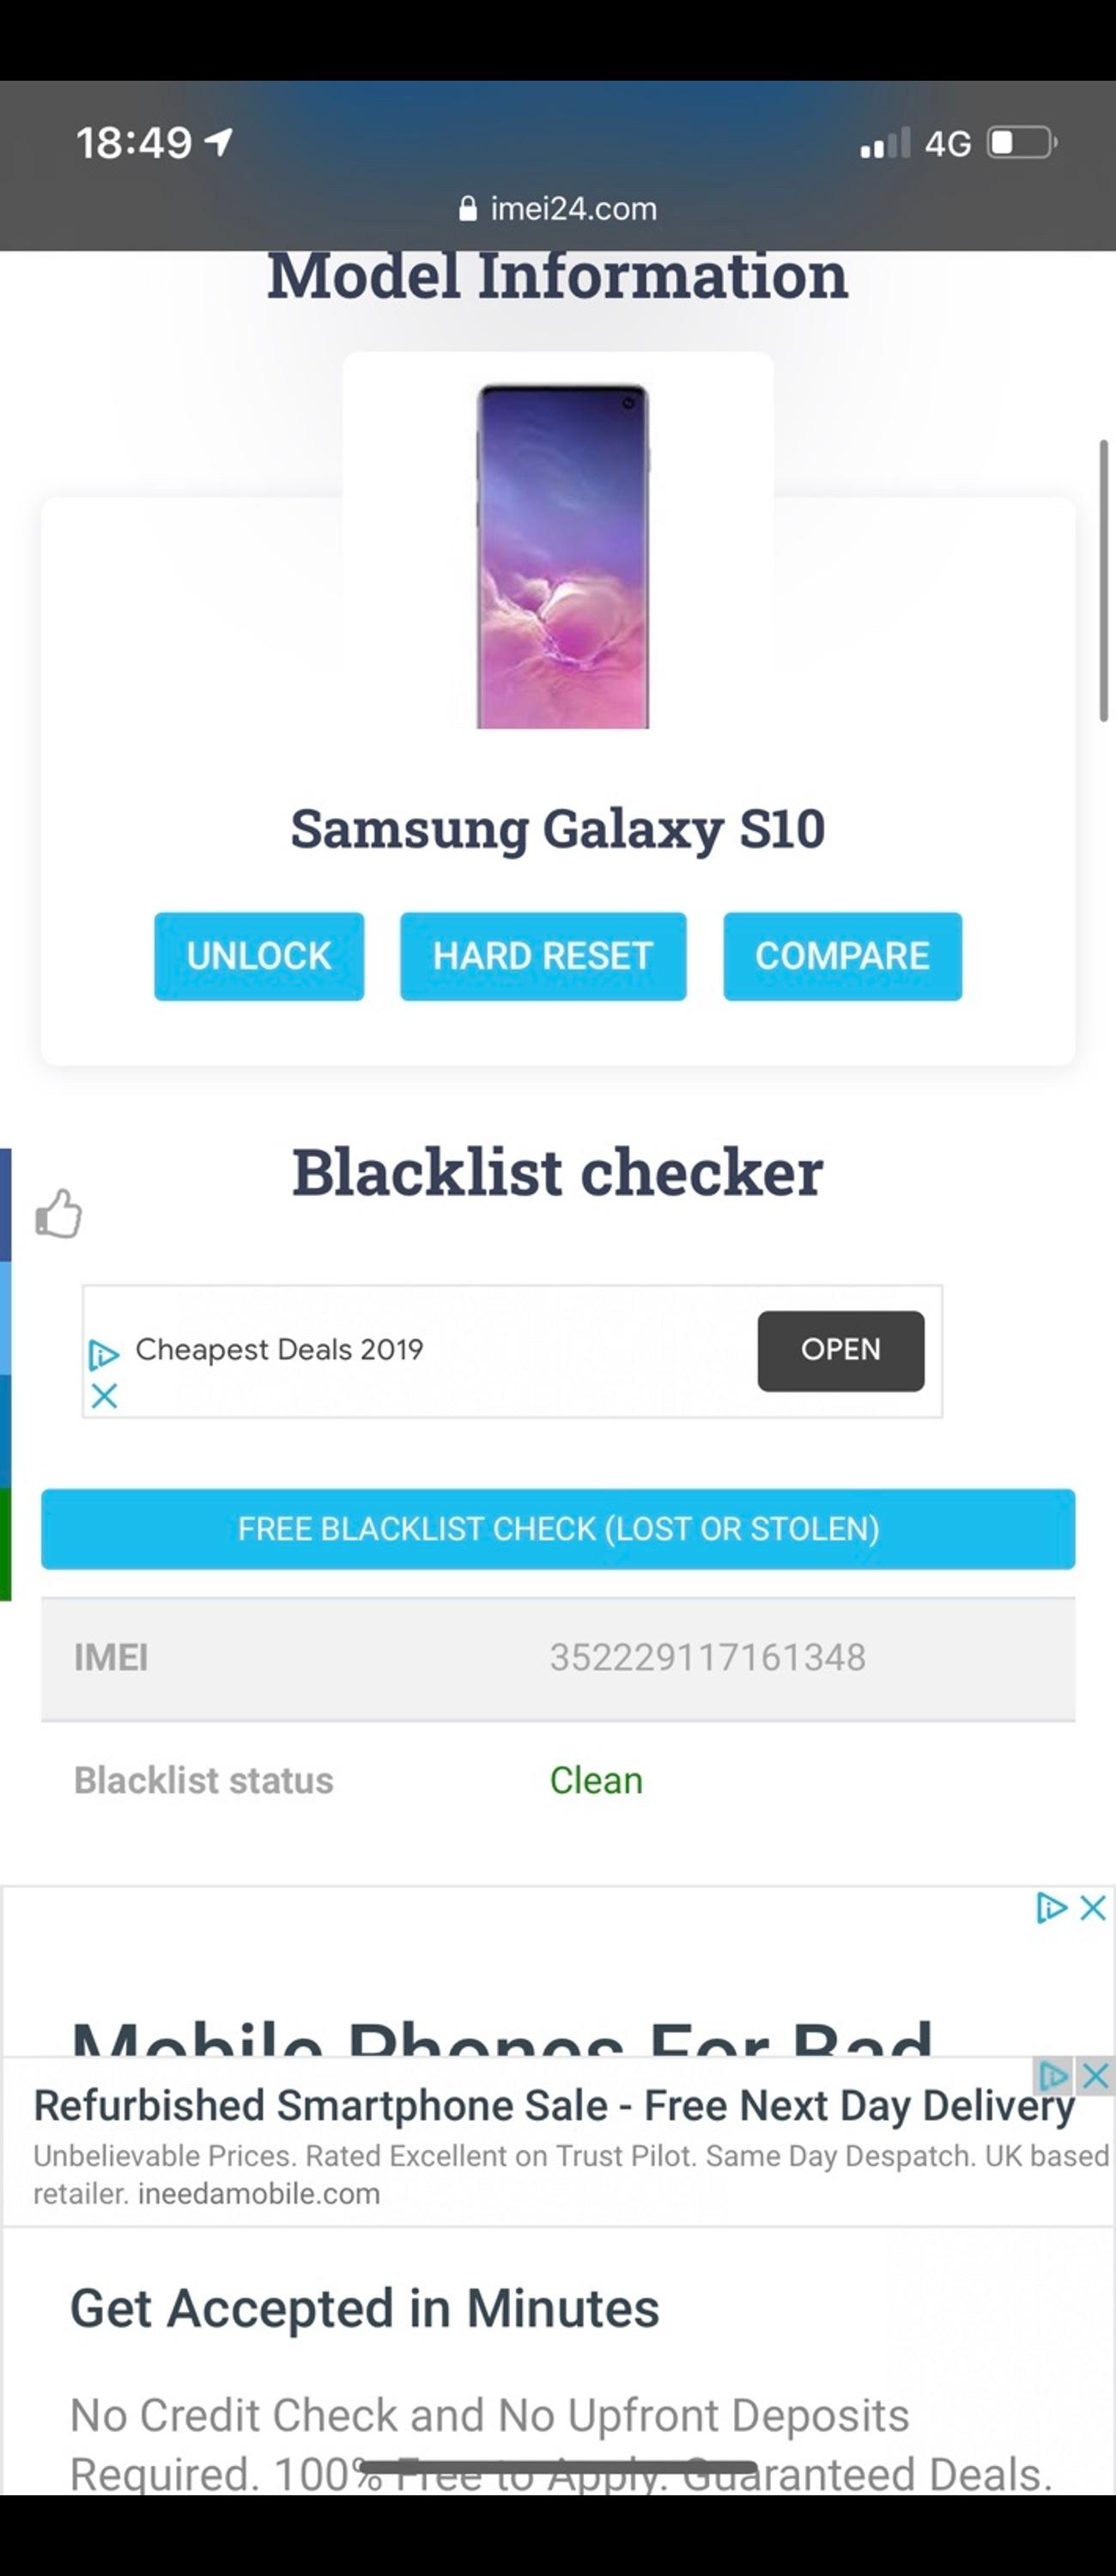 I braught this Samsung s10 as it was listed as unlocked via the Facebook market 4 days ago , I paid 350 for it but it's not reading my three sim. I need a phone that works on three so I purchased another phone. Here is my mint Samsung s10 not a single scratch or mark and still has screen protector. It's 128 gb and dual sim. Also device care is 100!! I'm selling for 250 or very best offer as I'm unable to use this phone. I've removed my google account and it's ready to set up. Deliver local